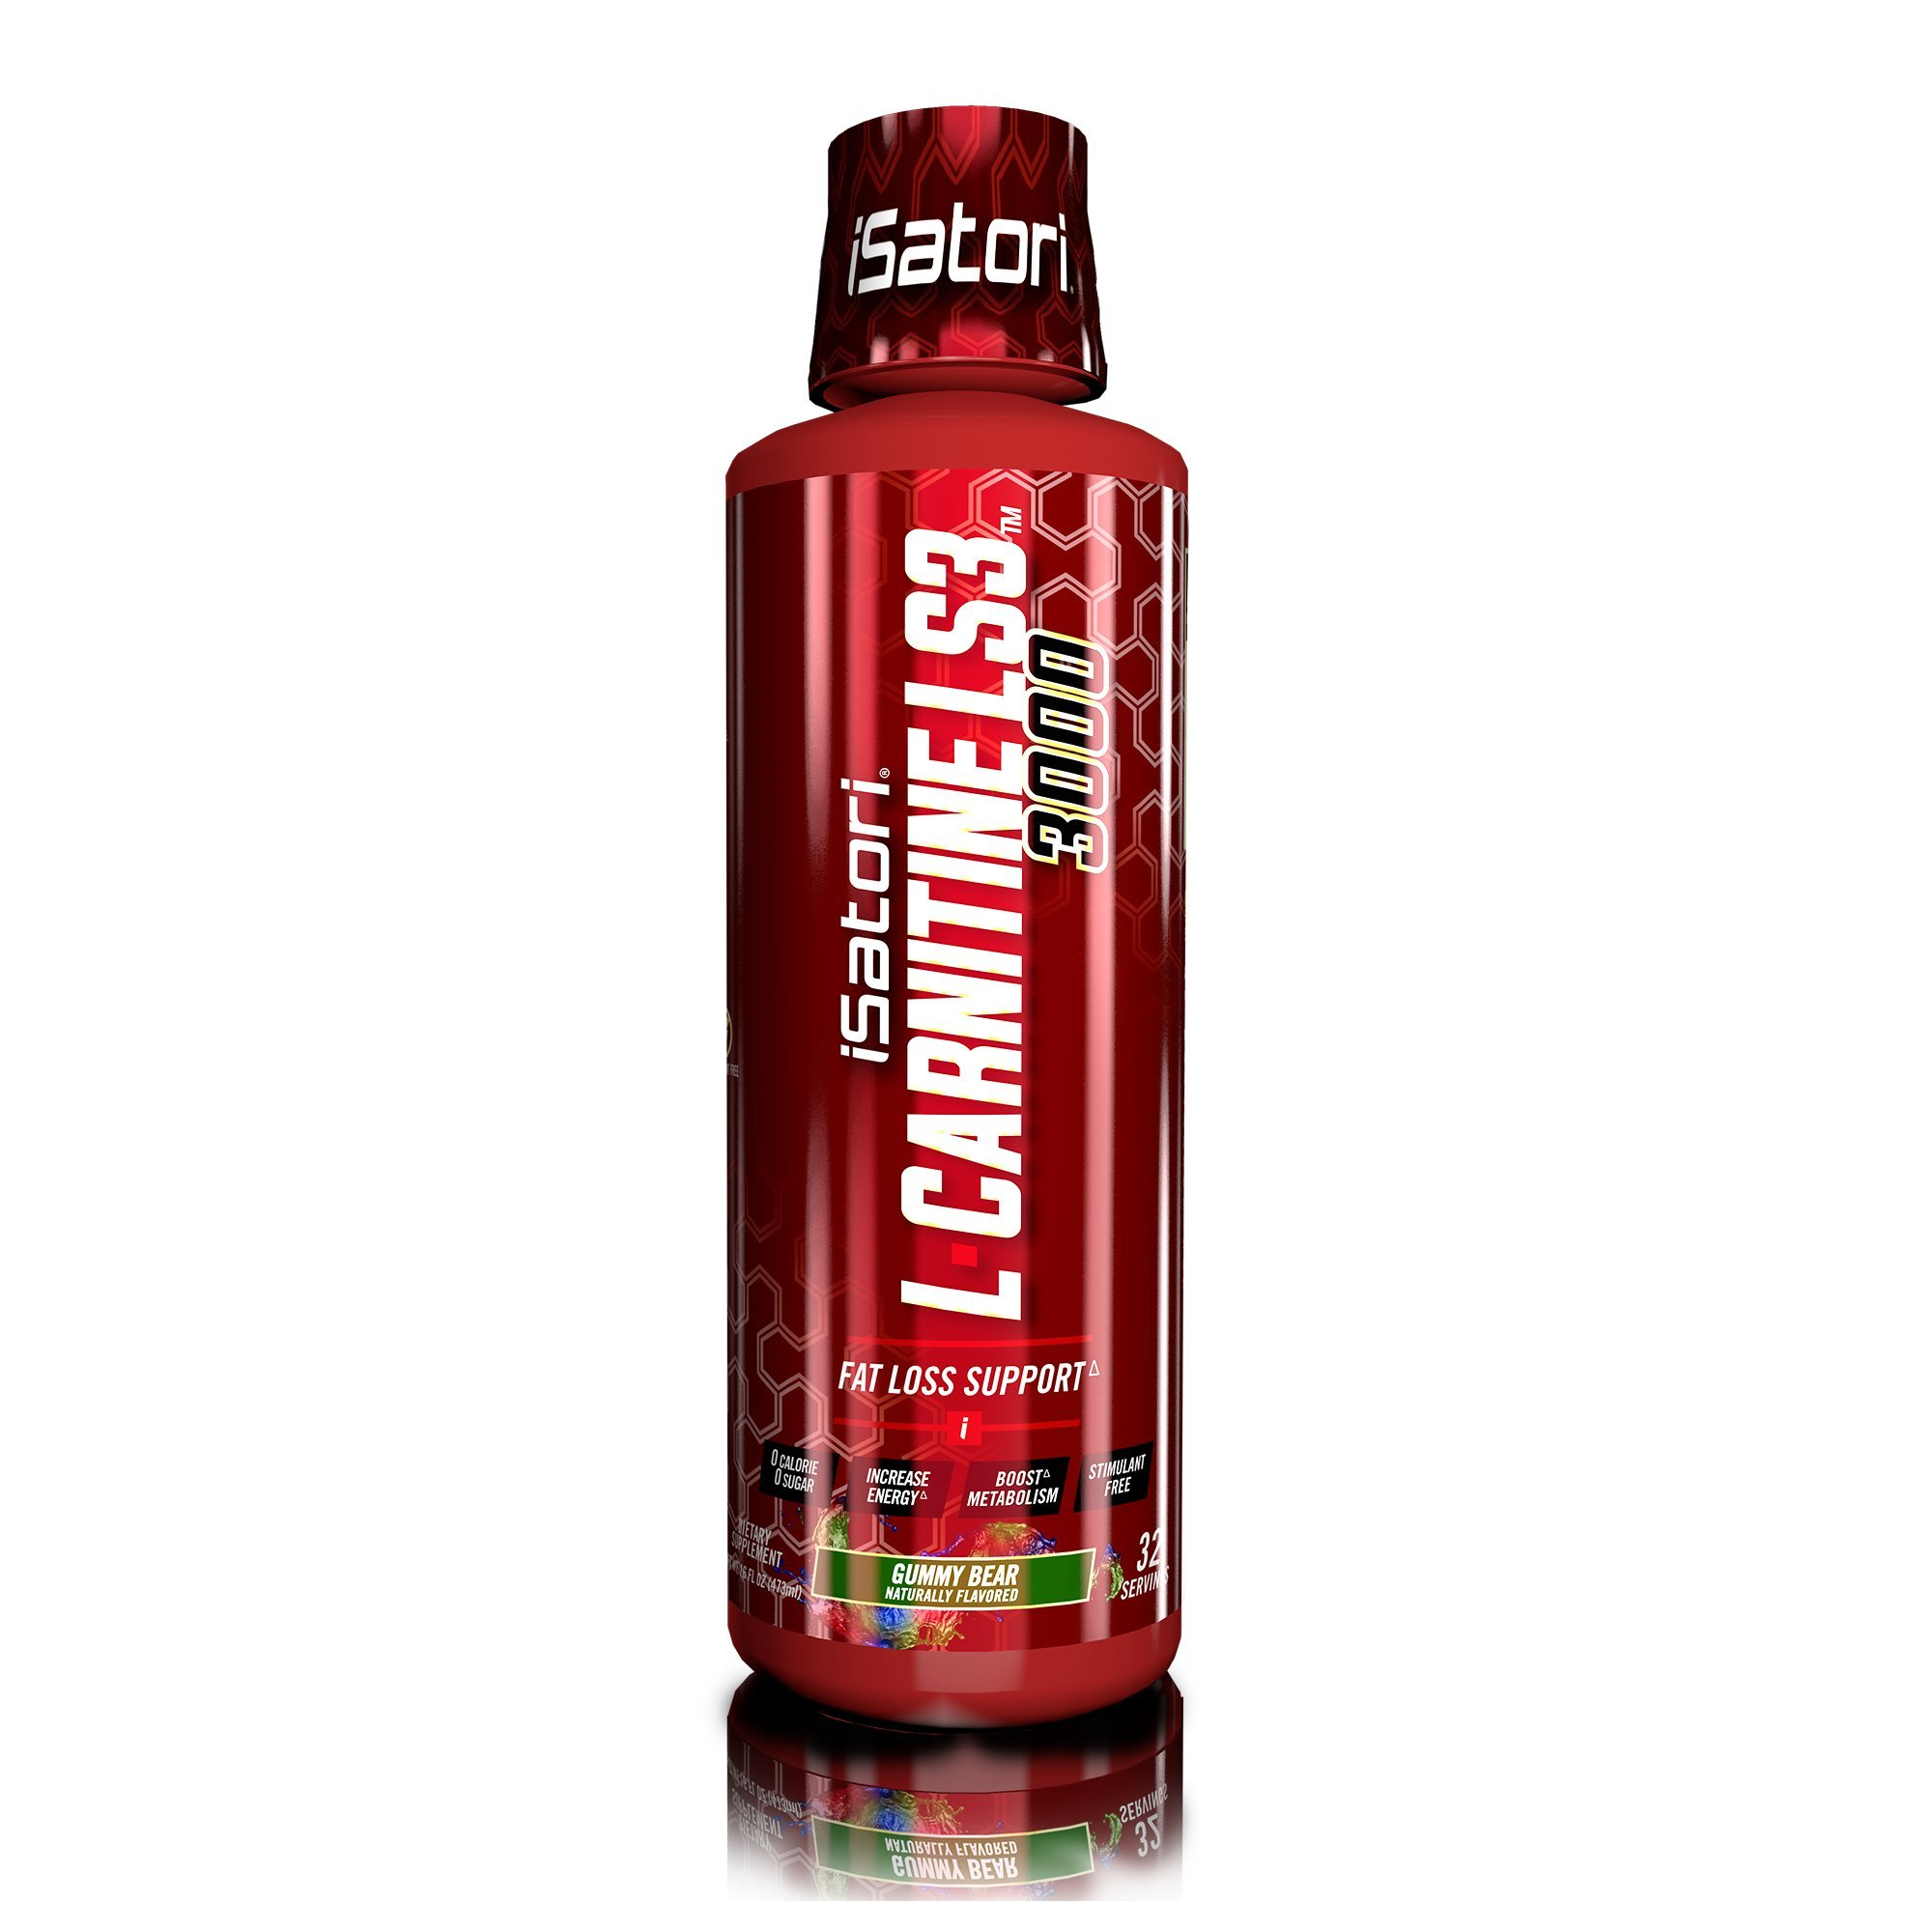 iSatori L-Carnitine LS3 Concentrated Liquid Fat Burner And Metabolism Activator - Fat Burner For Health And Fitness - Stimulant Free - Gummy Bear 3000mg - 32 Servings